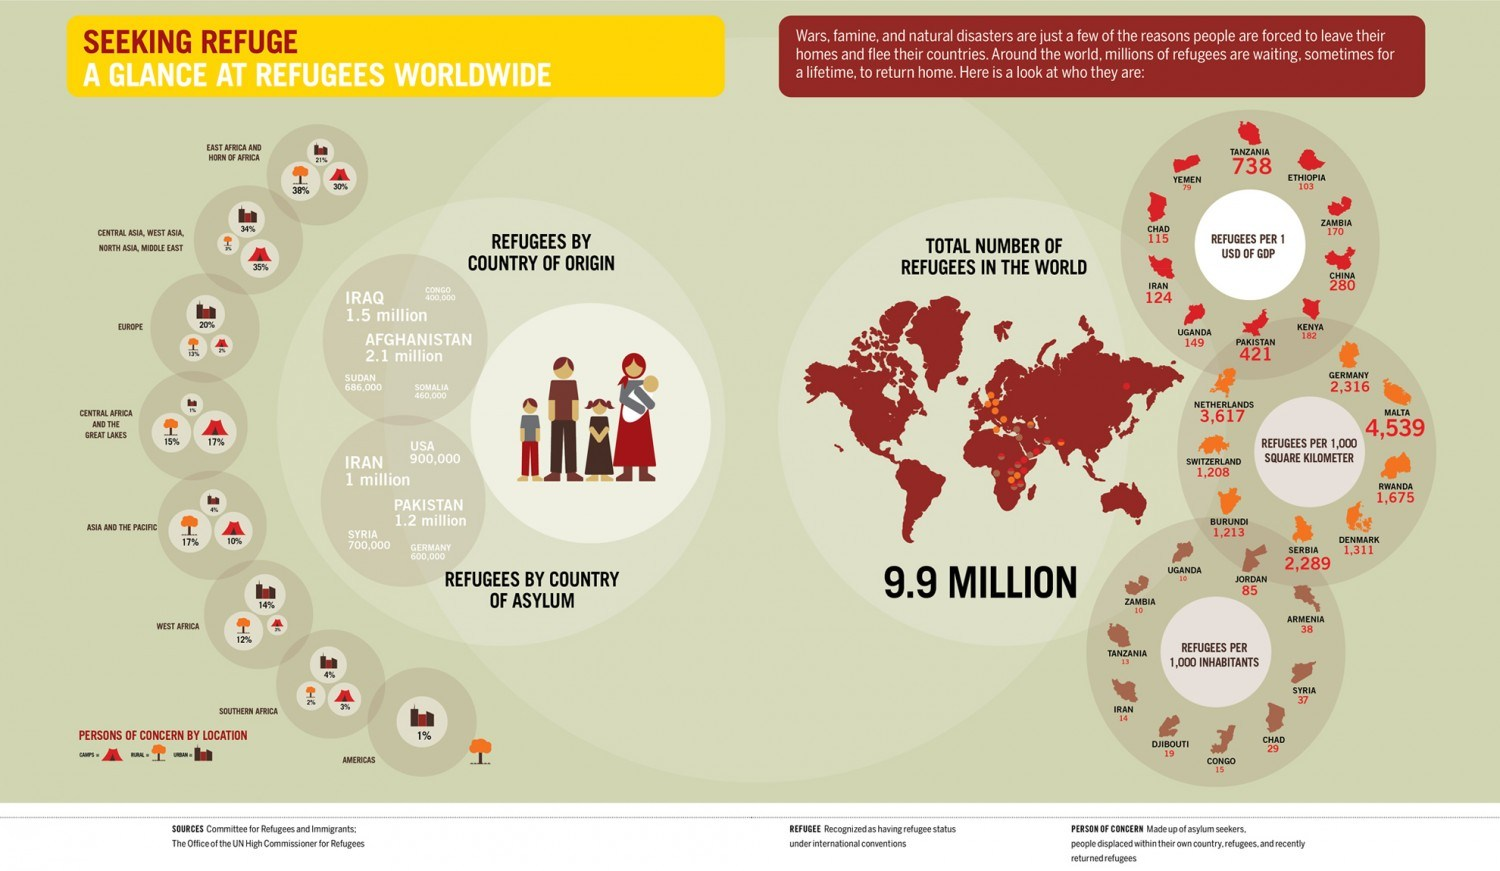 Seeking Refuge A Glance at Refugees Worlwide